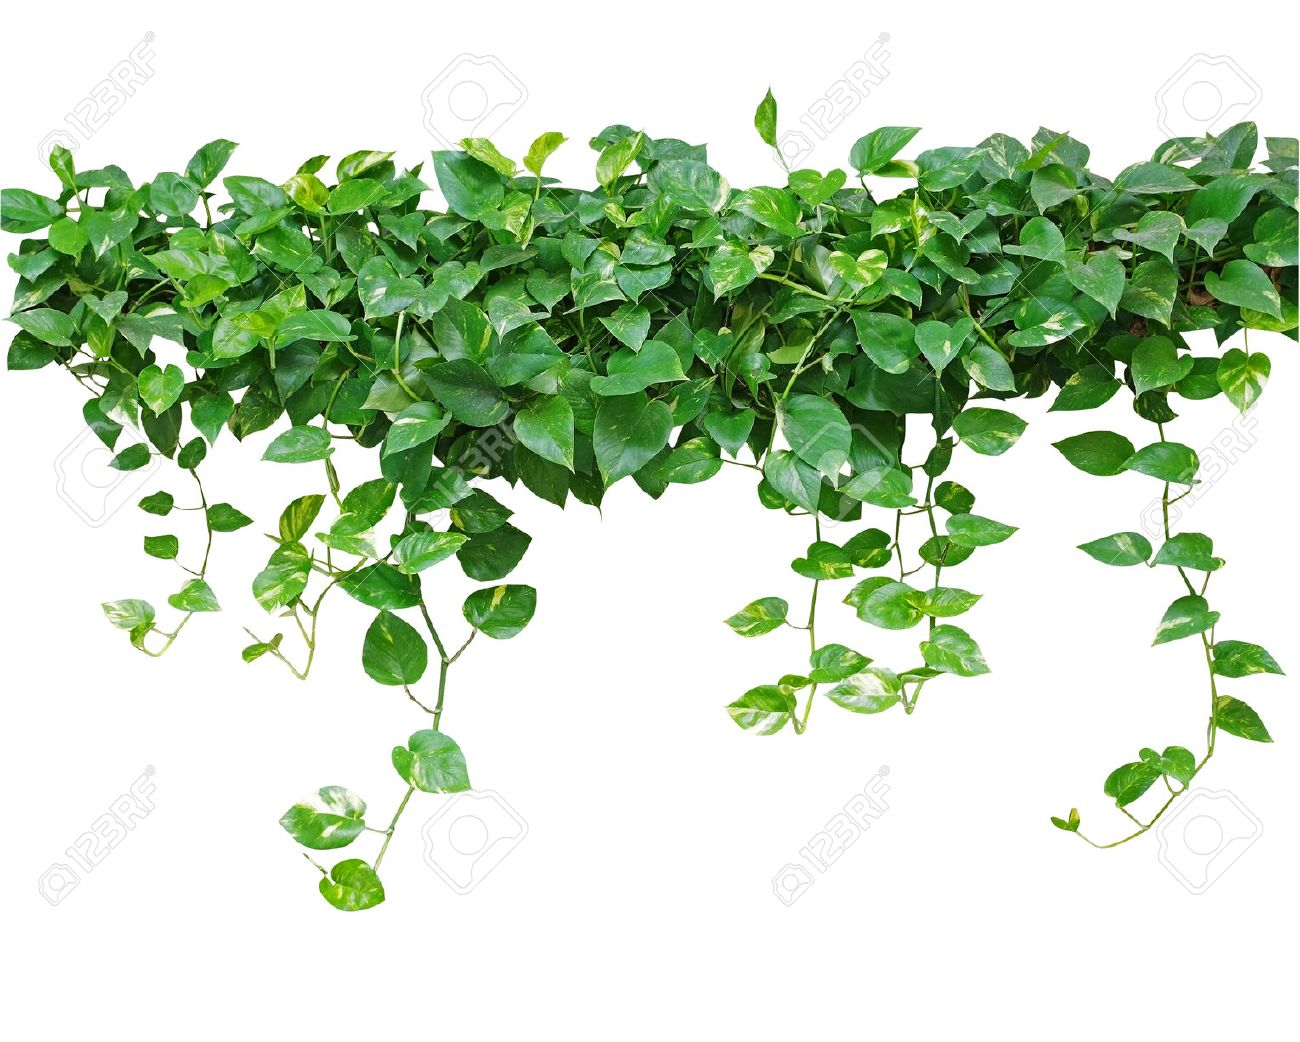 Heart Shaped Leaves Vine Devils Ivy Golden Pothos Isolated